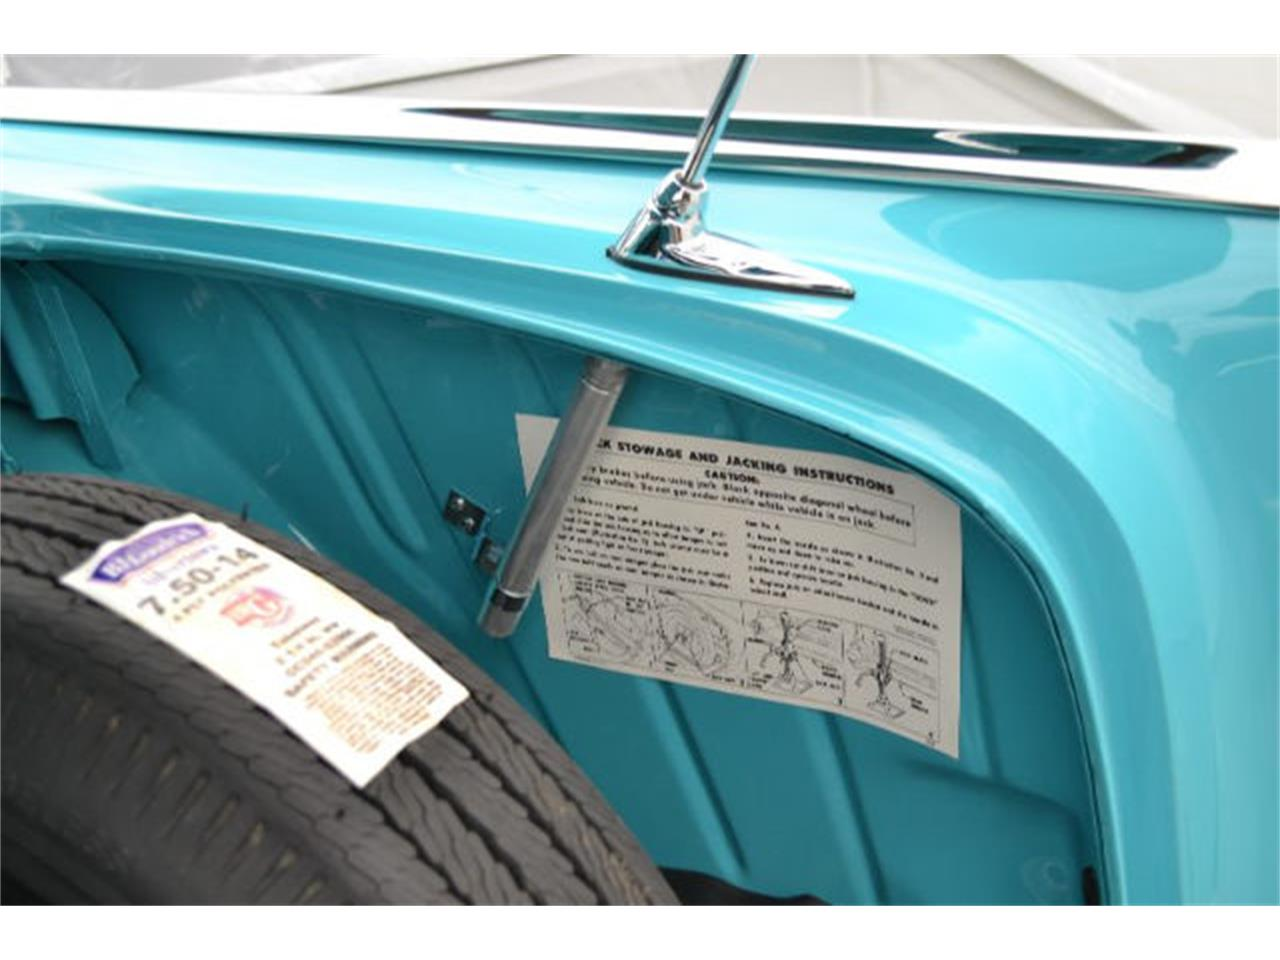 Large Picture of 1957 Chevrolet Bel Air located in North Carolina - $150,000.00 Offered by Paramount Classic Car Store - ABTB